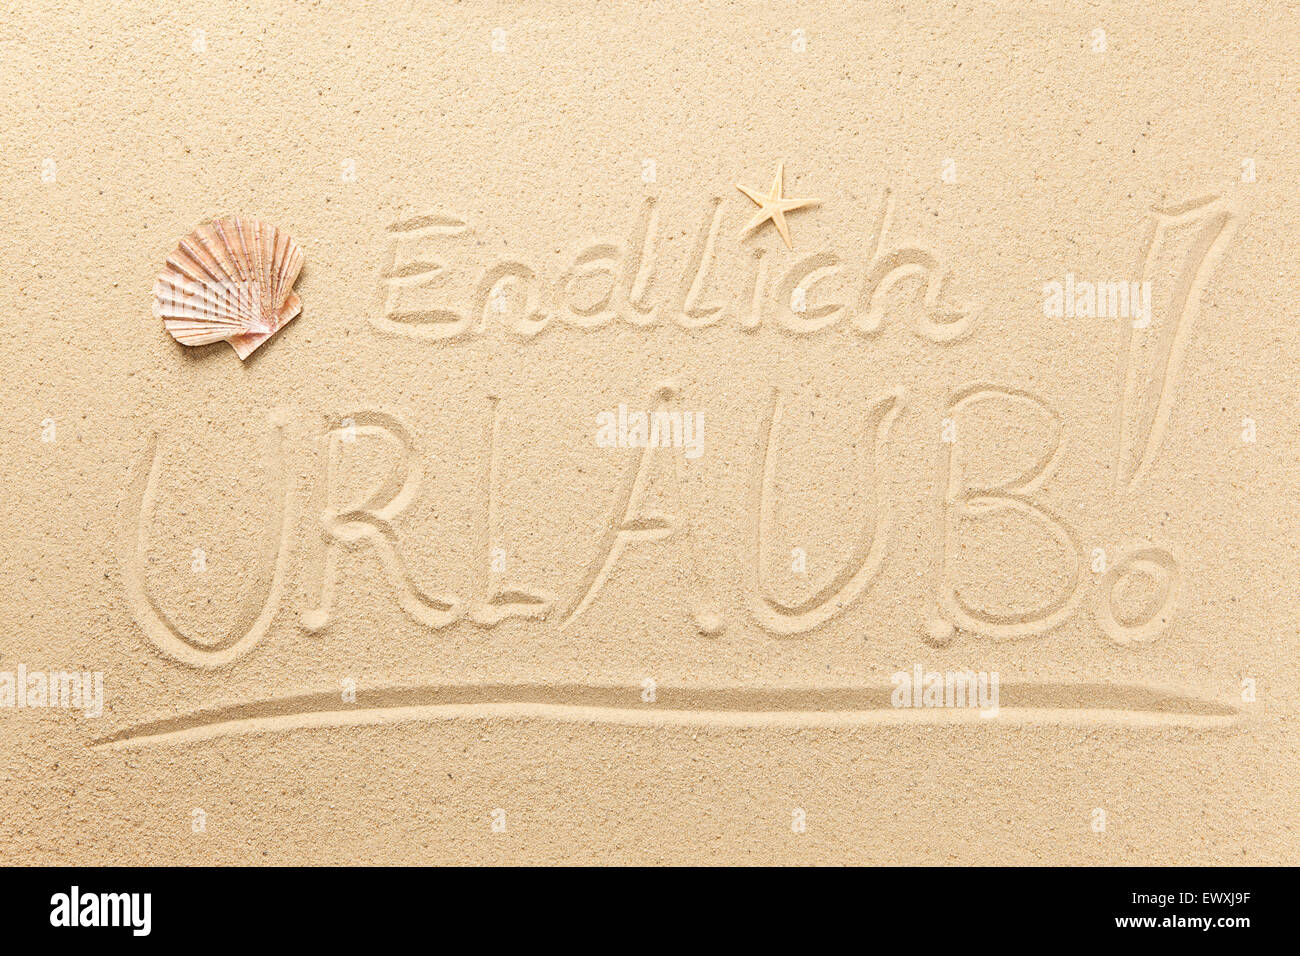 Finally Holiday written in sand Stock Photo